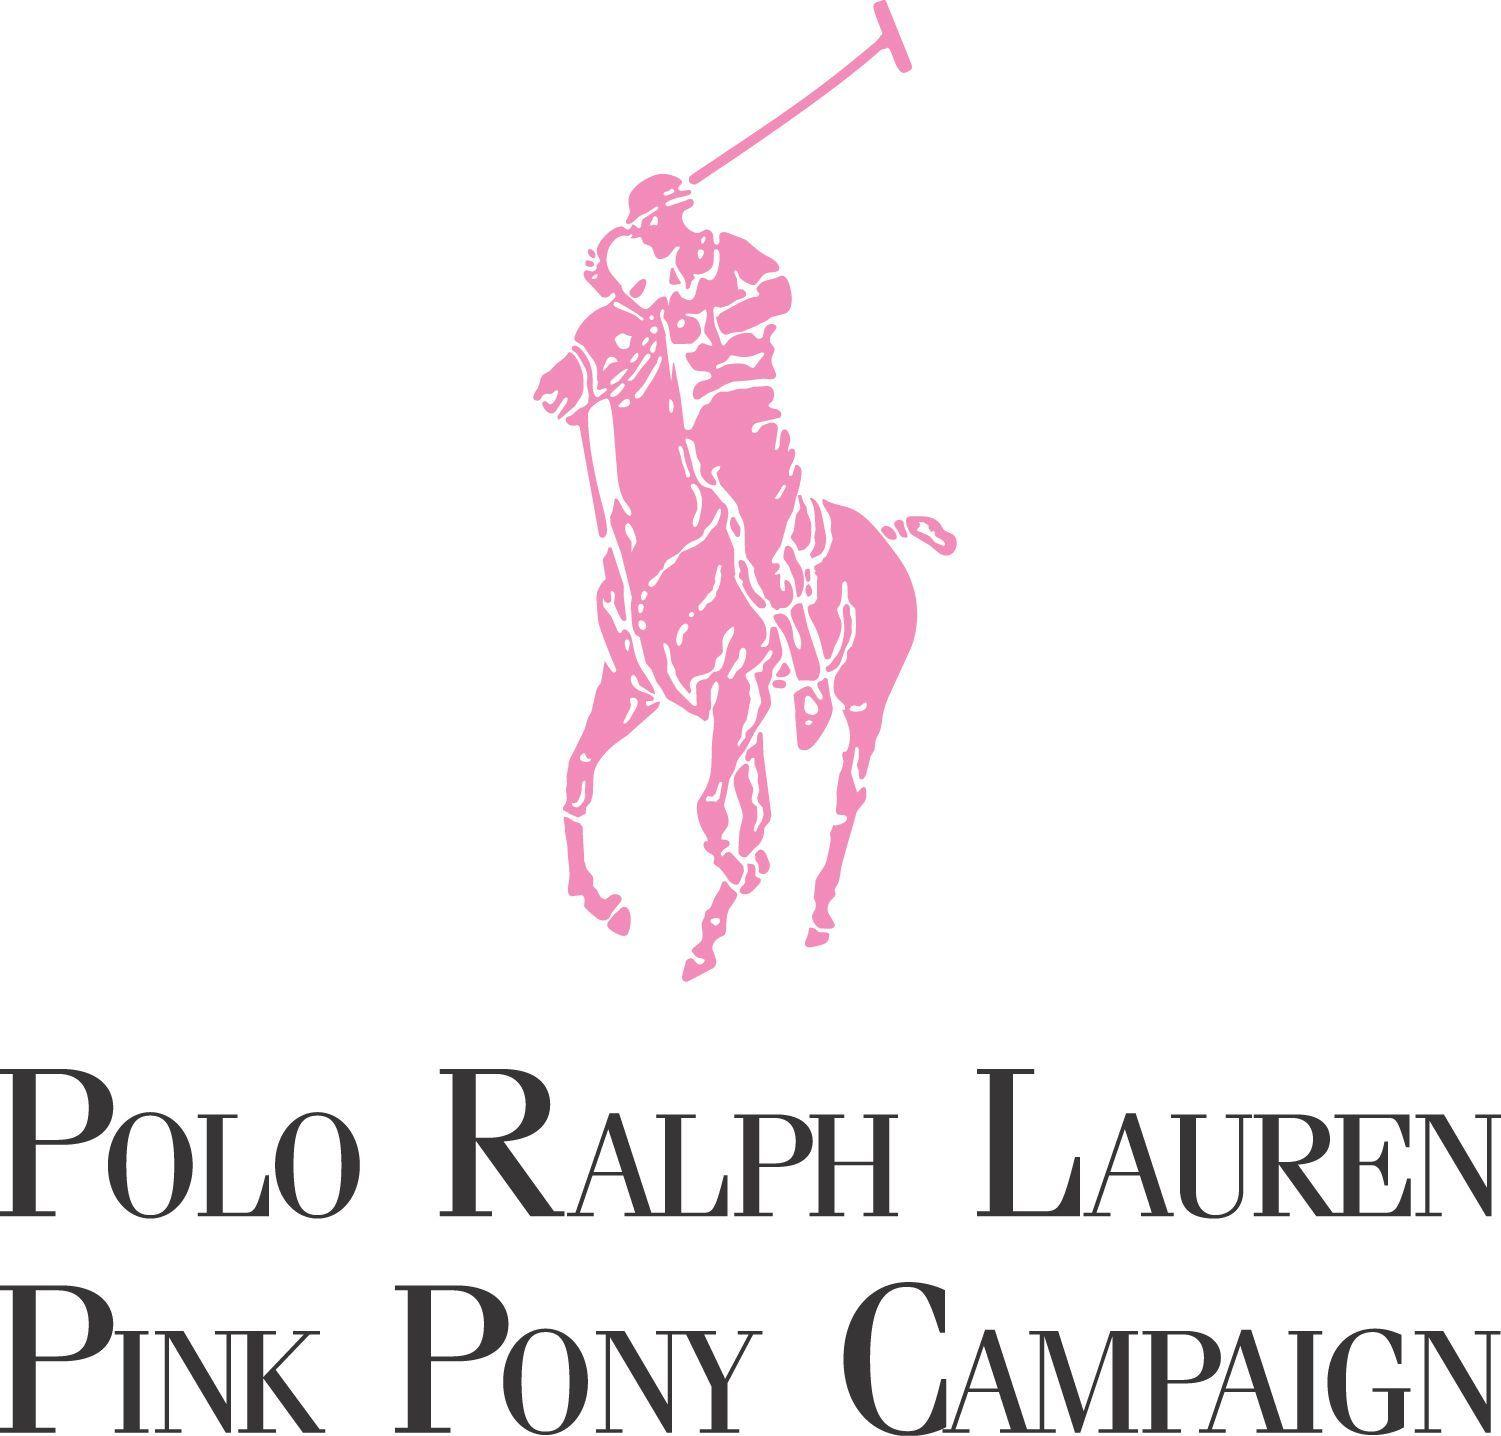 Image For > Ralph Lauren Logo Pink